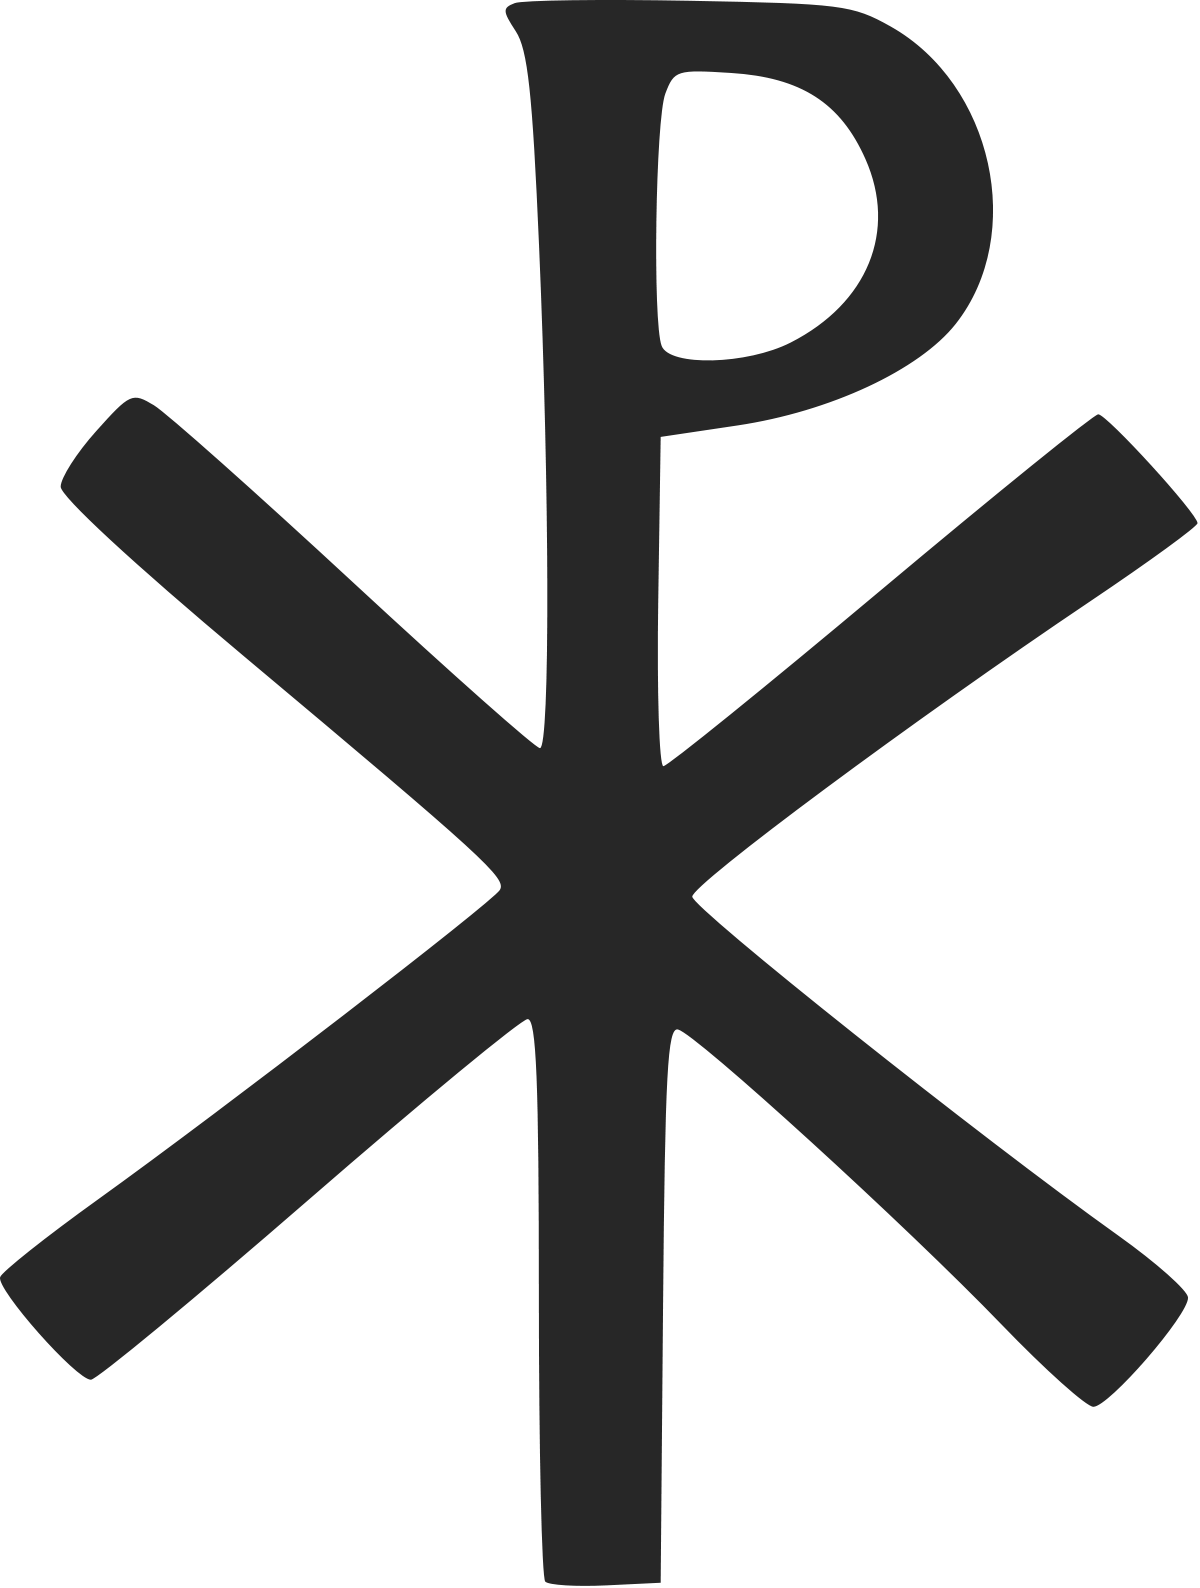 Chi Rho symbol wallpaper